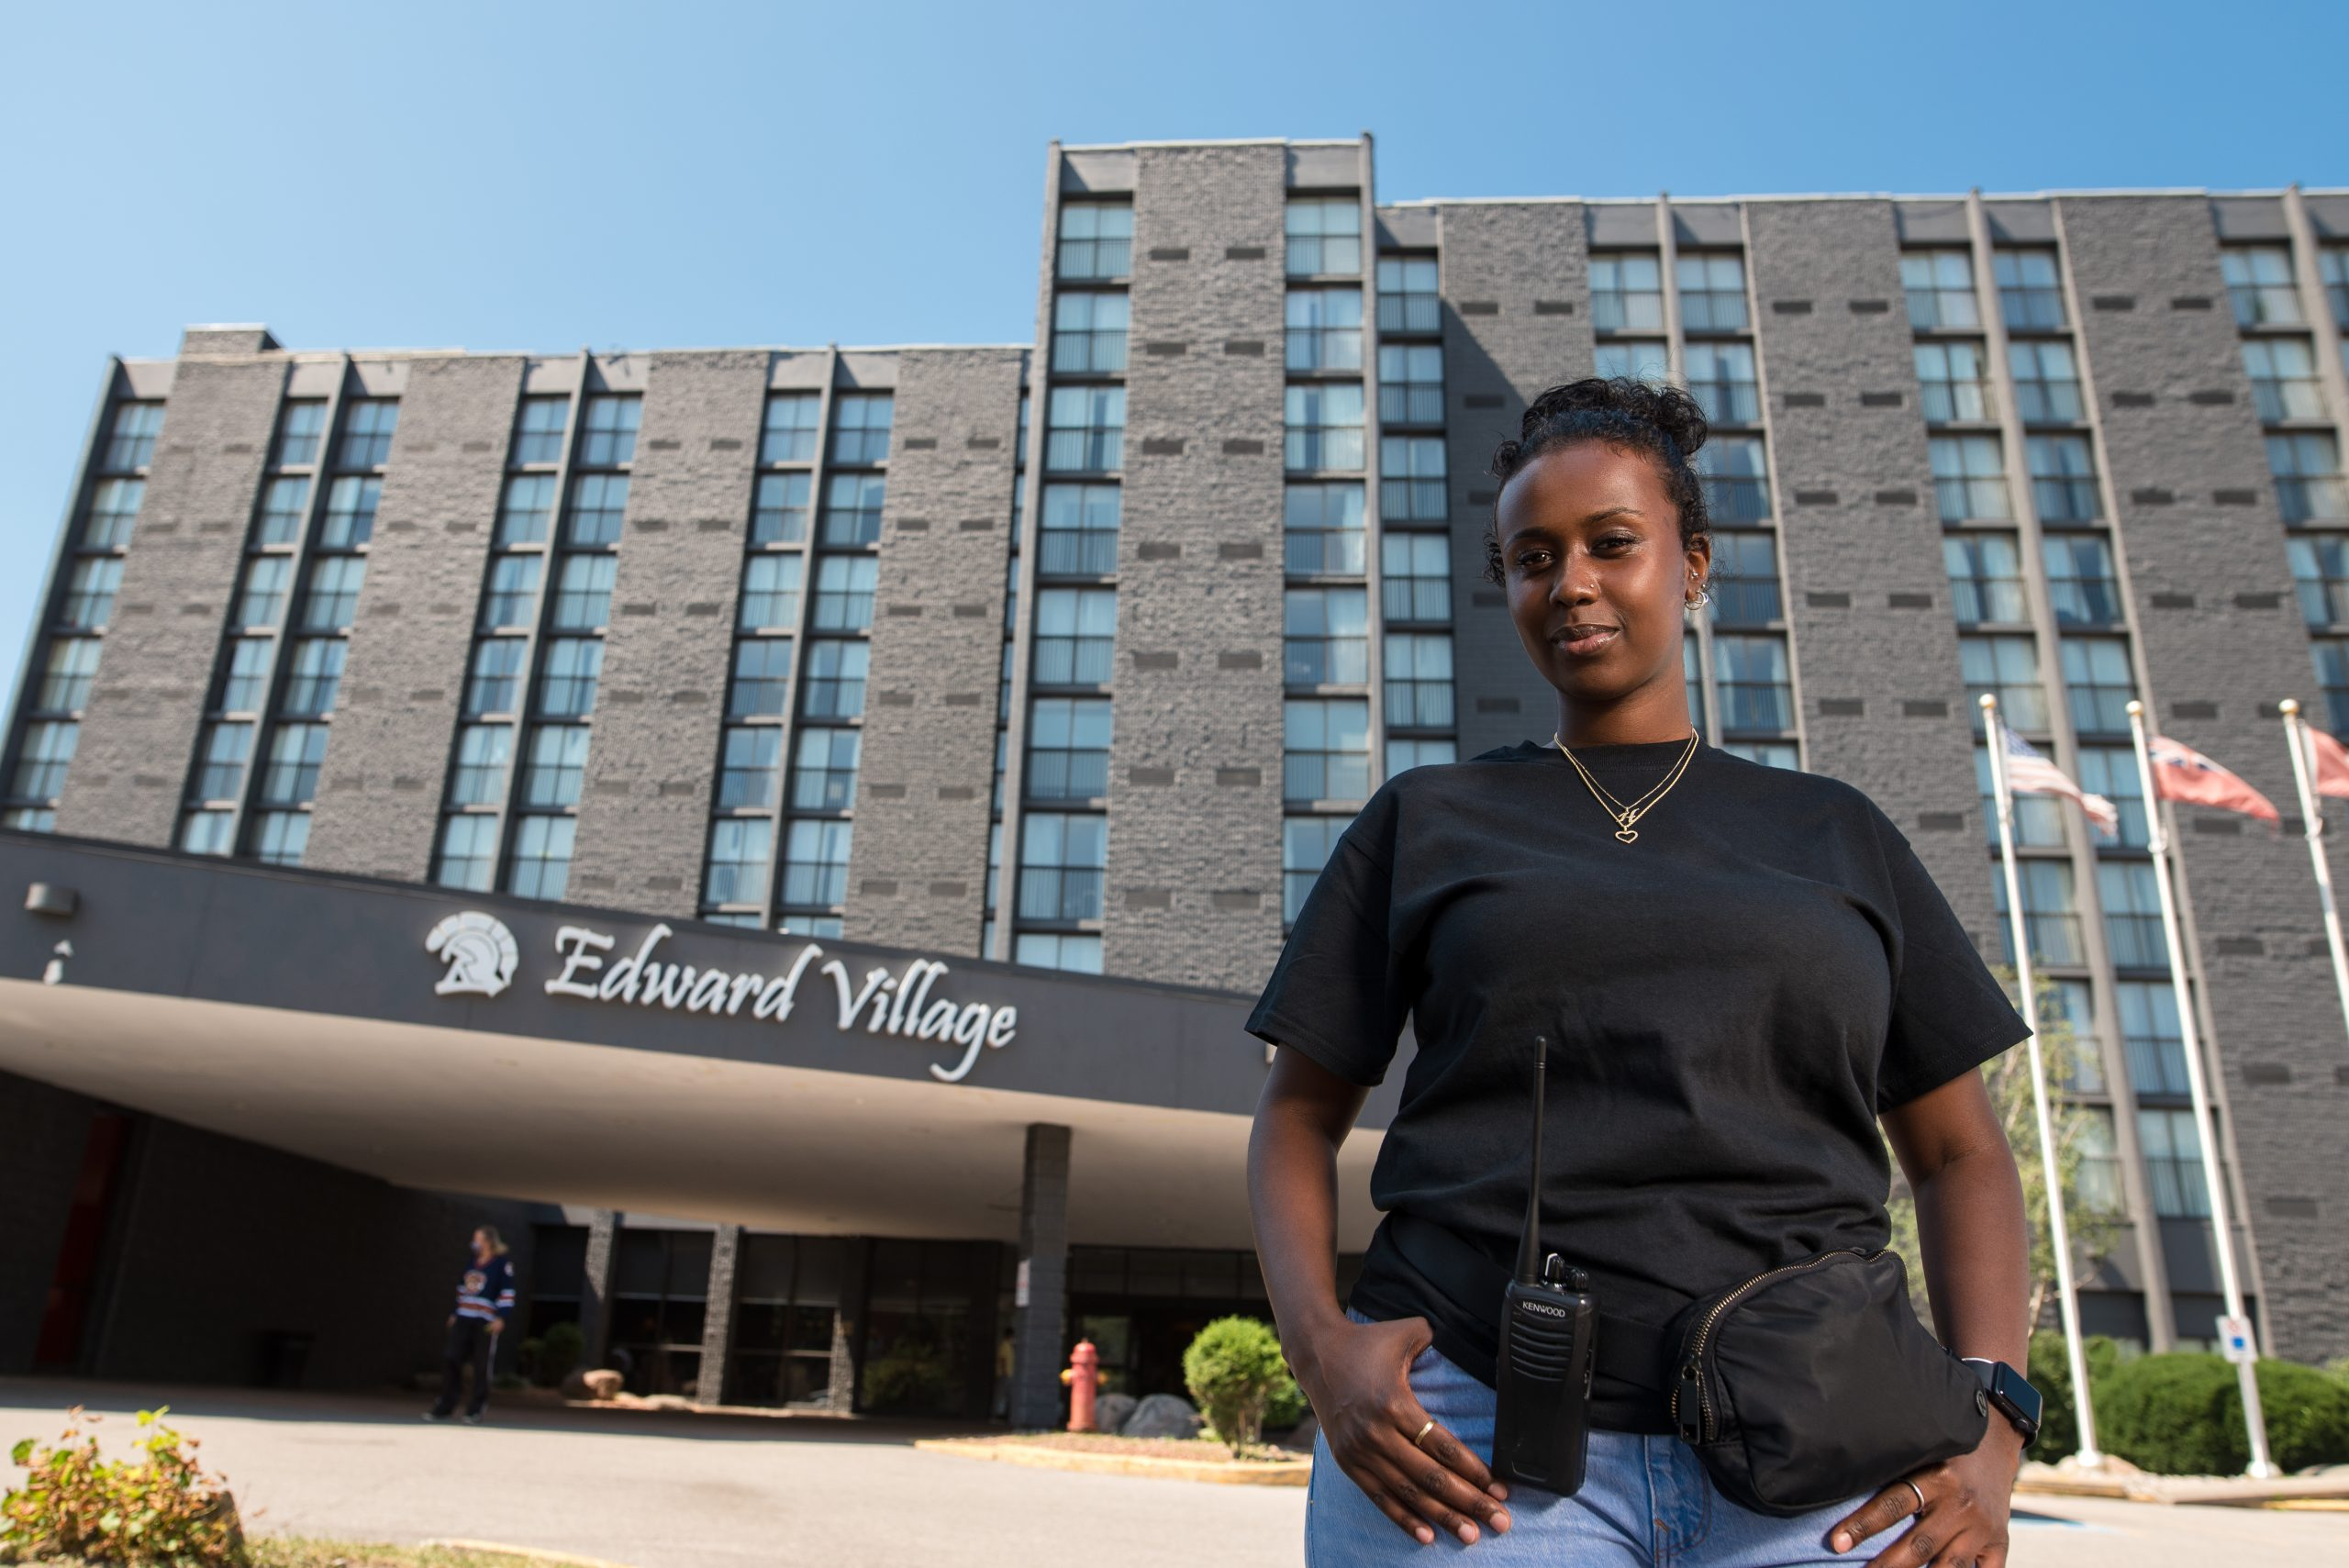 A woman is standing in front of Edward Village Hotel